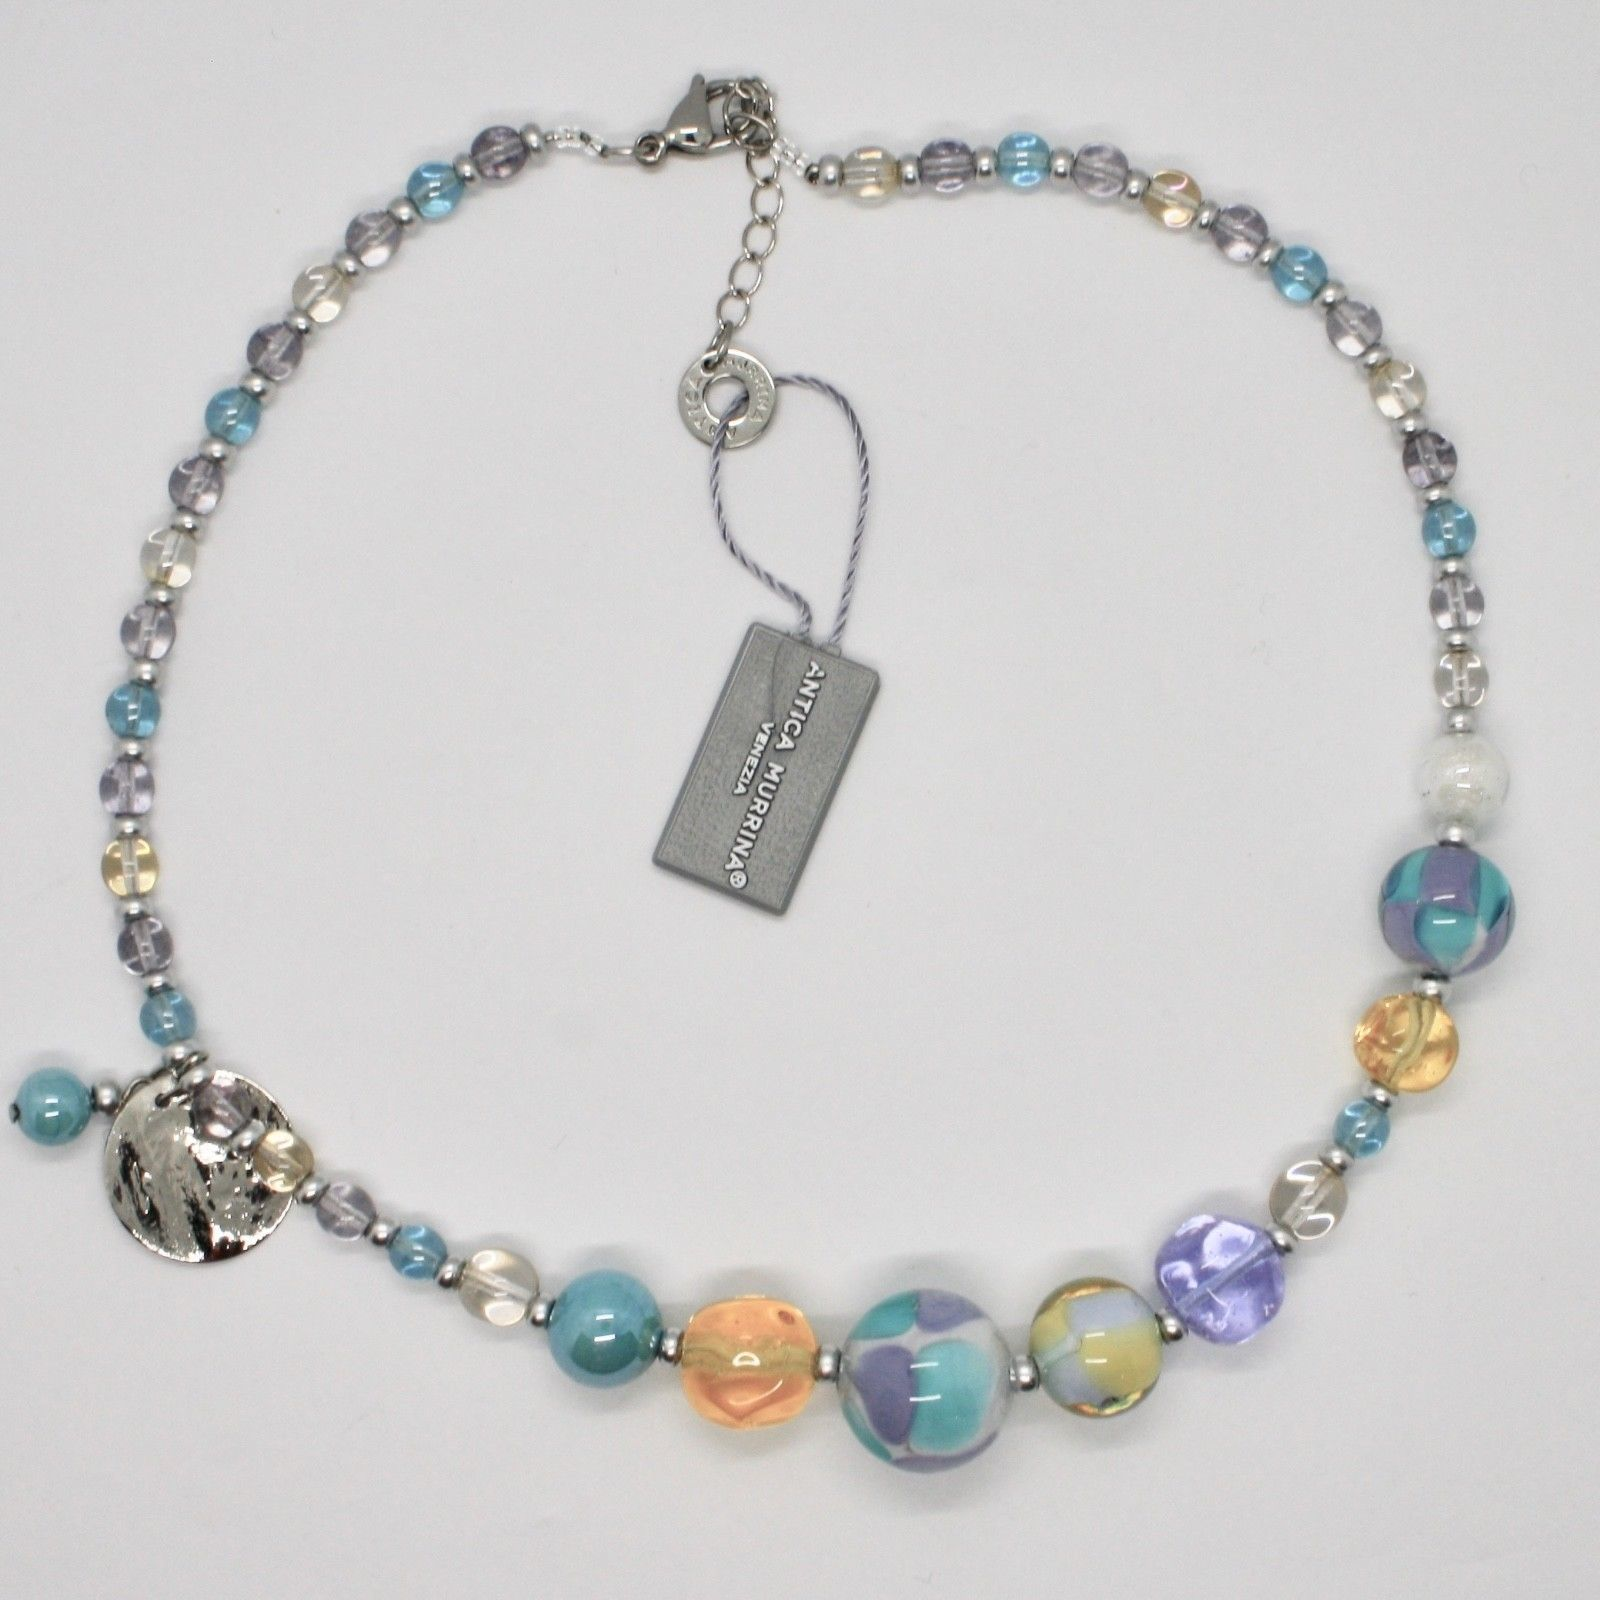 ANTICA MURRINA VENEZIA NECKLACE WITH MURANO GLASS SILVER BLUE YELLOW COA84A07